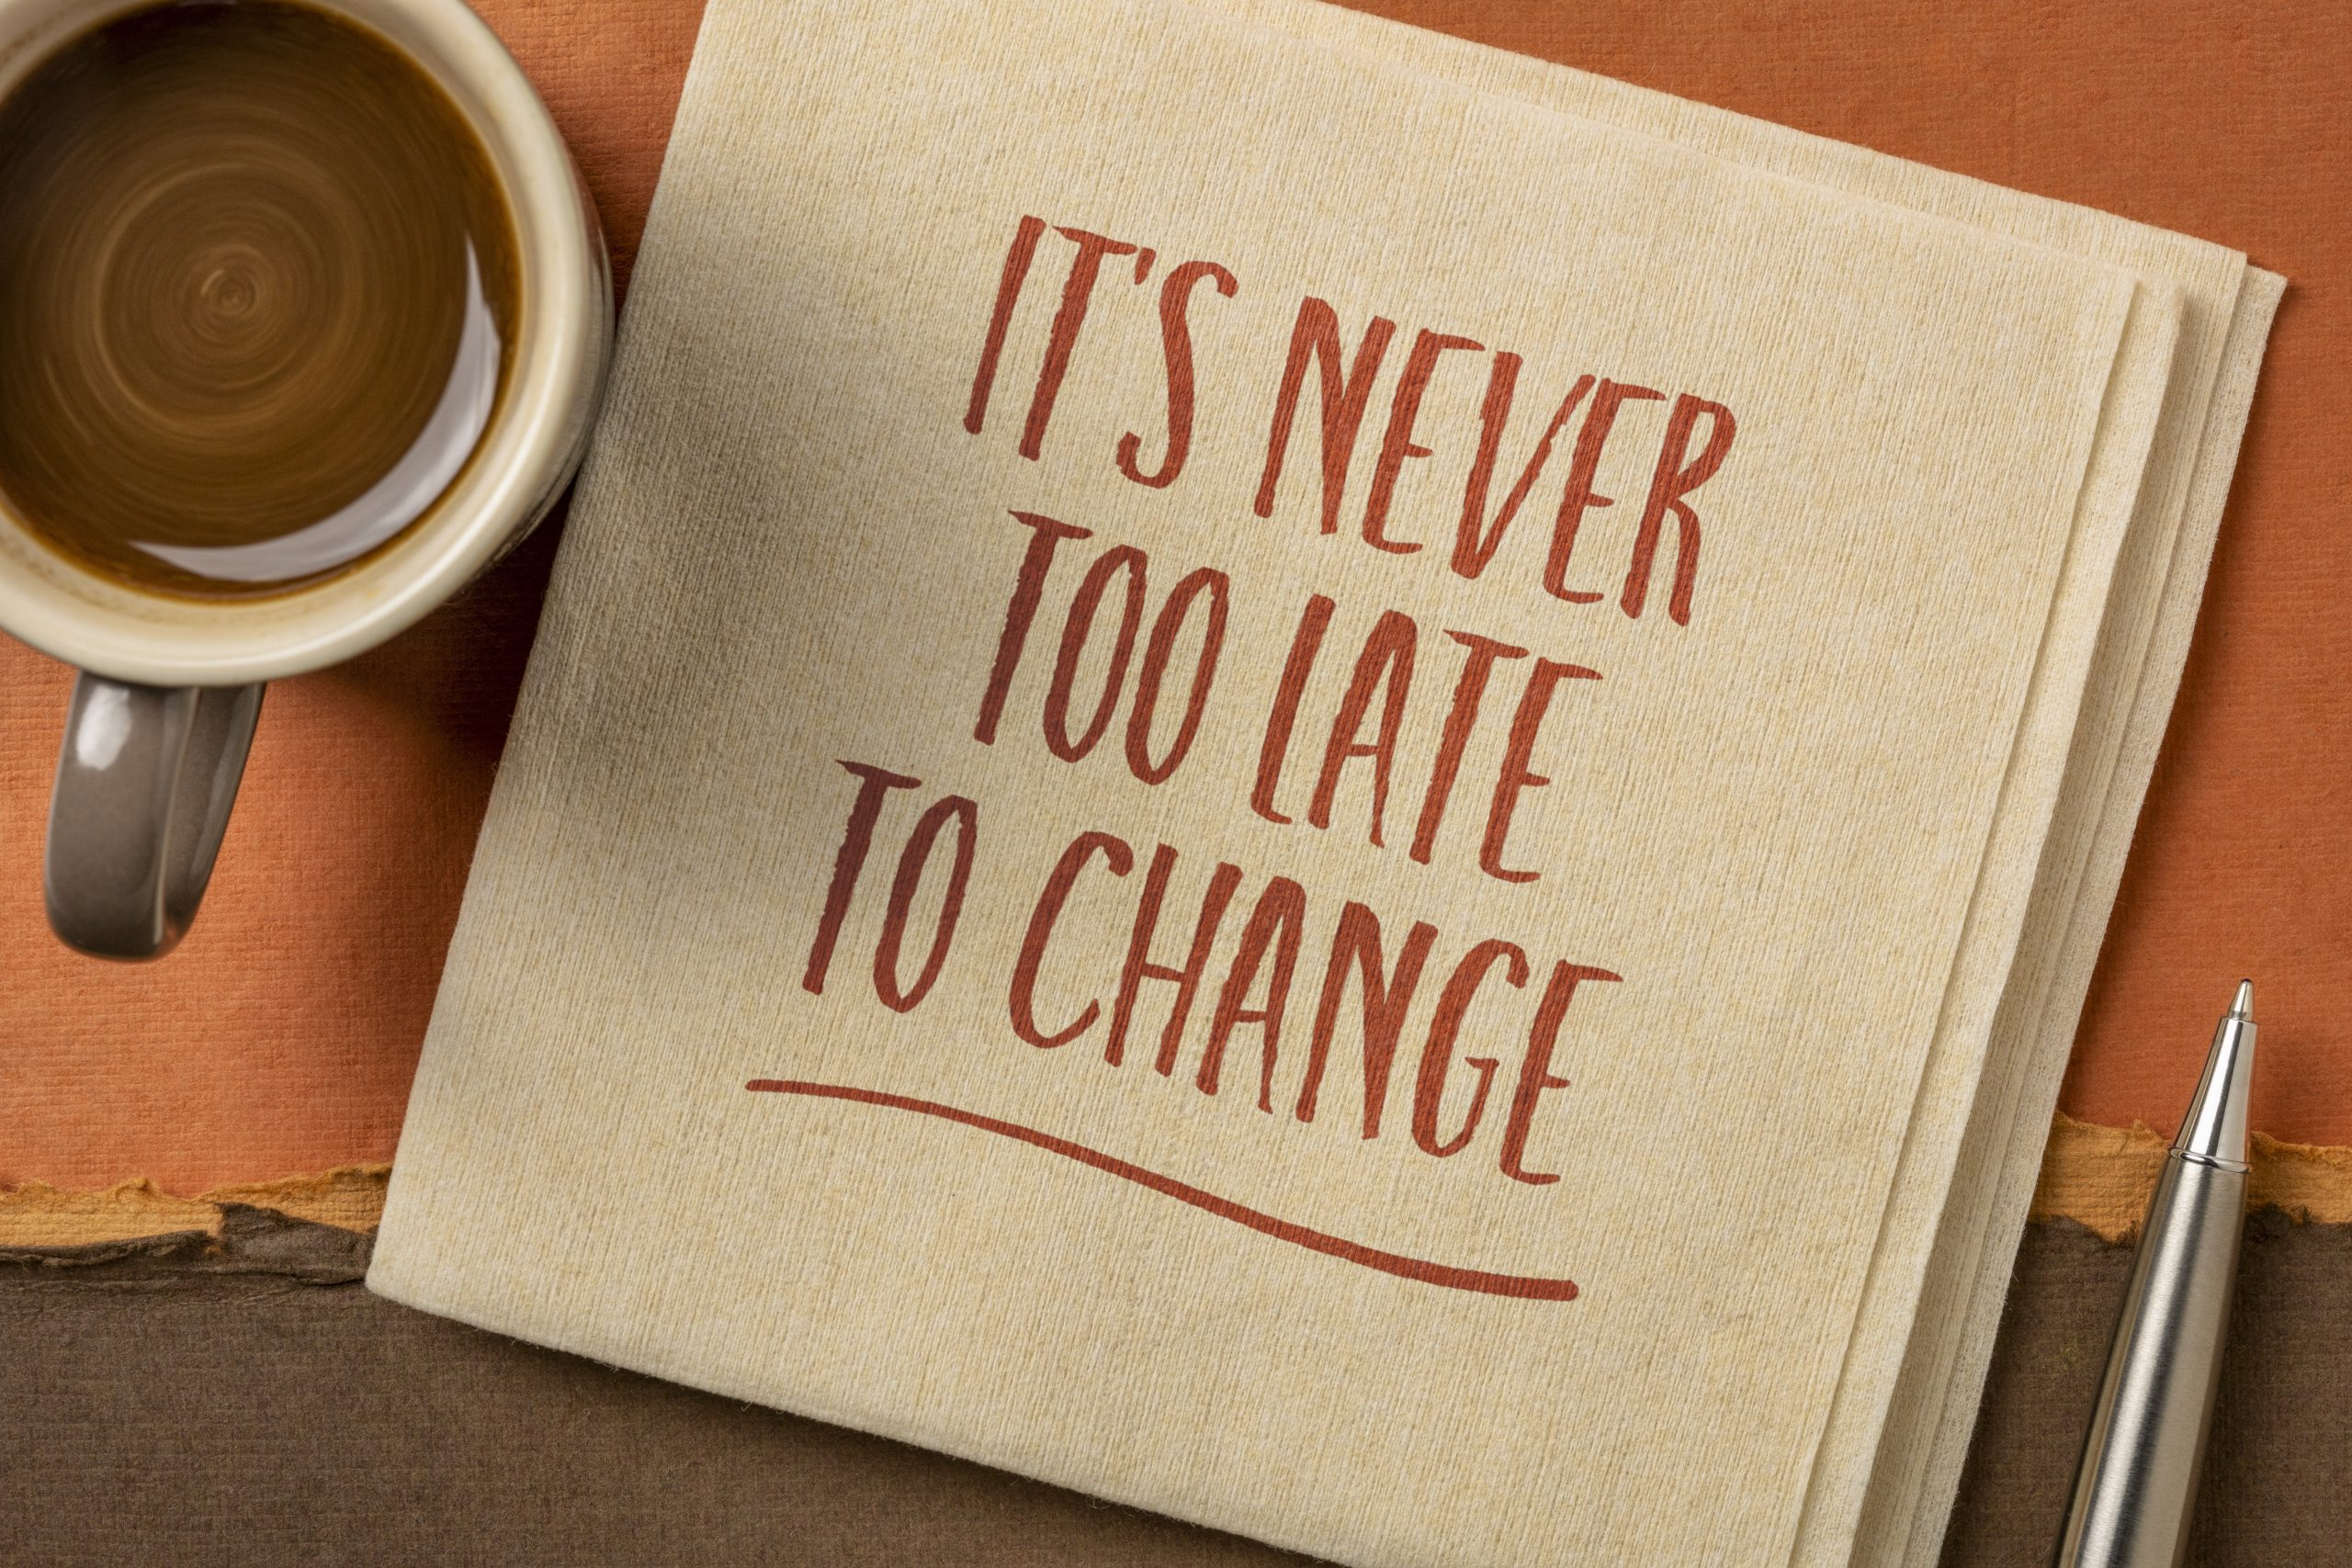 It's never too late to change your Medicare insurance.